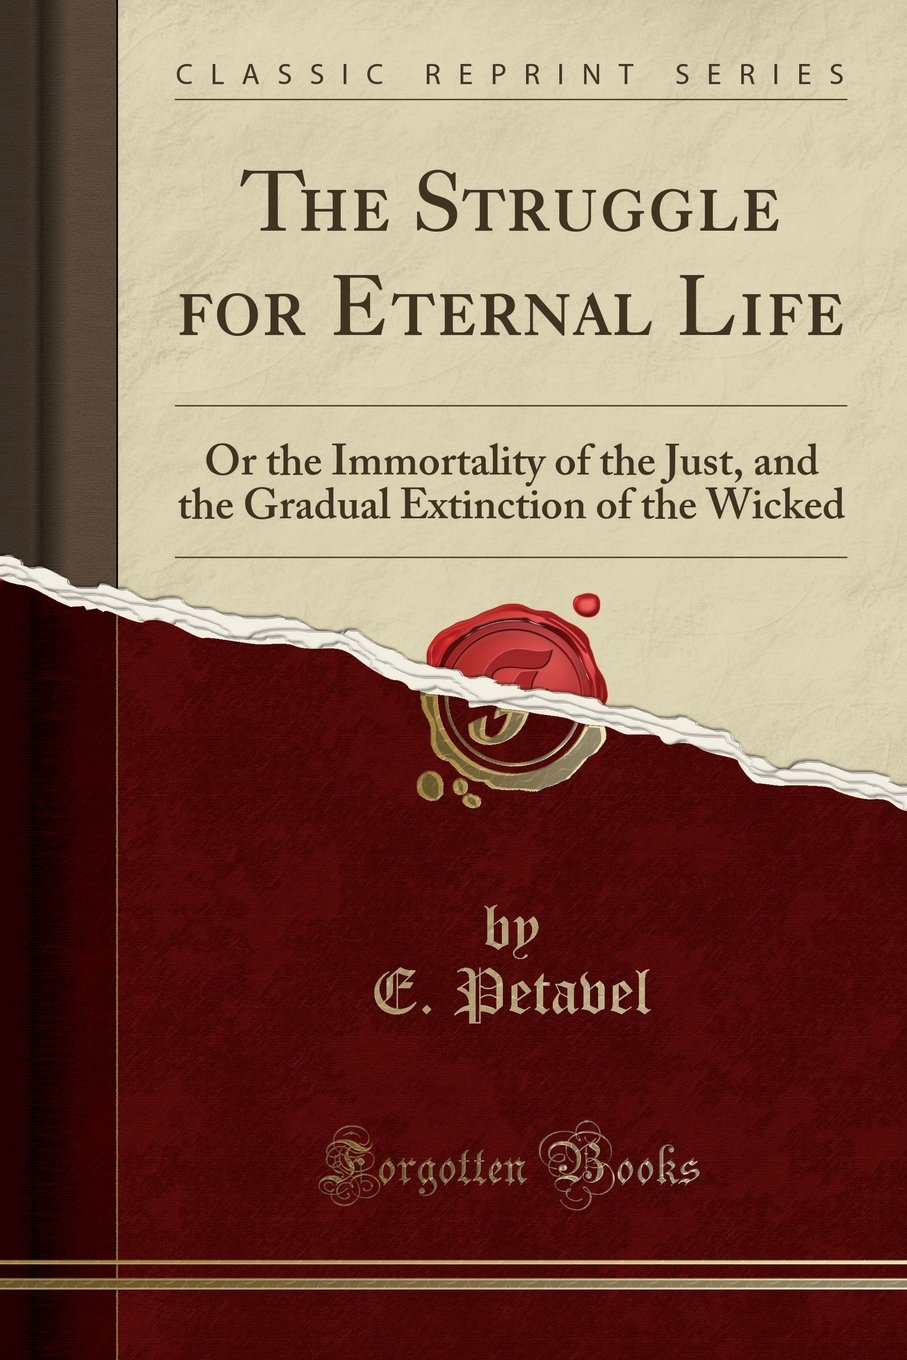 The Struggle for Eternal Life: Or the Immortality of the Just, and the Gradual Extinction of the Wicked (Classic Reprint) pdf